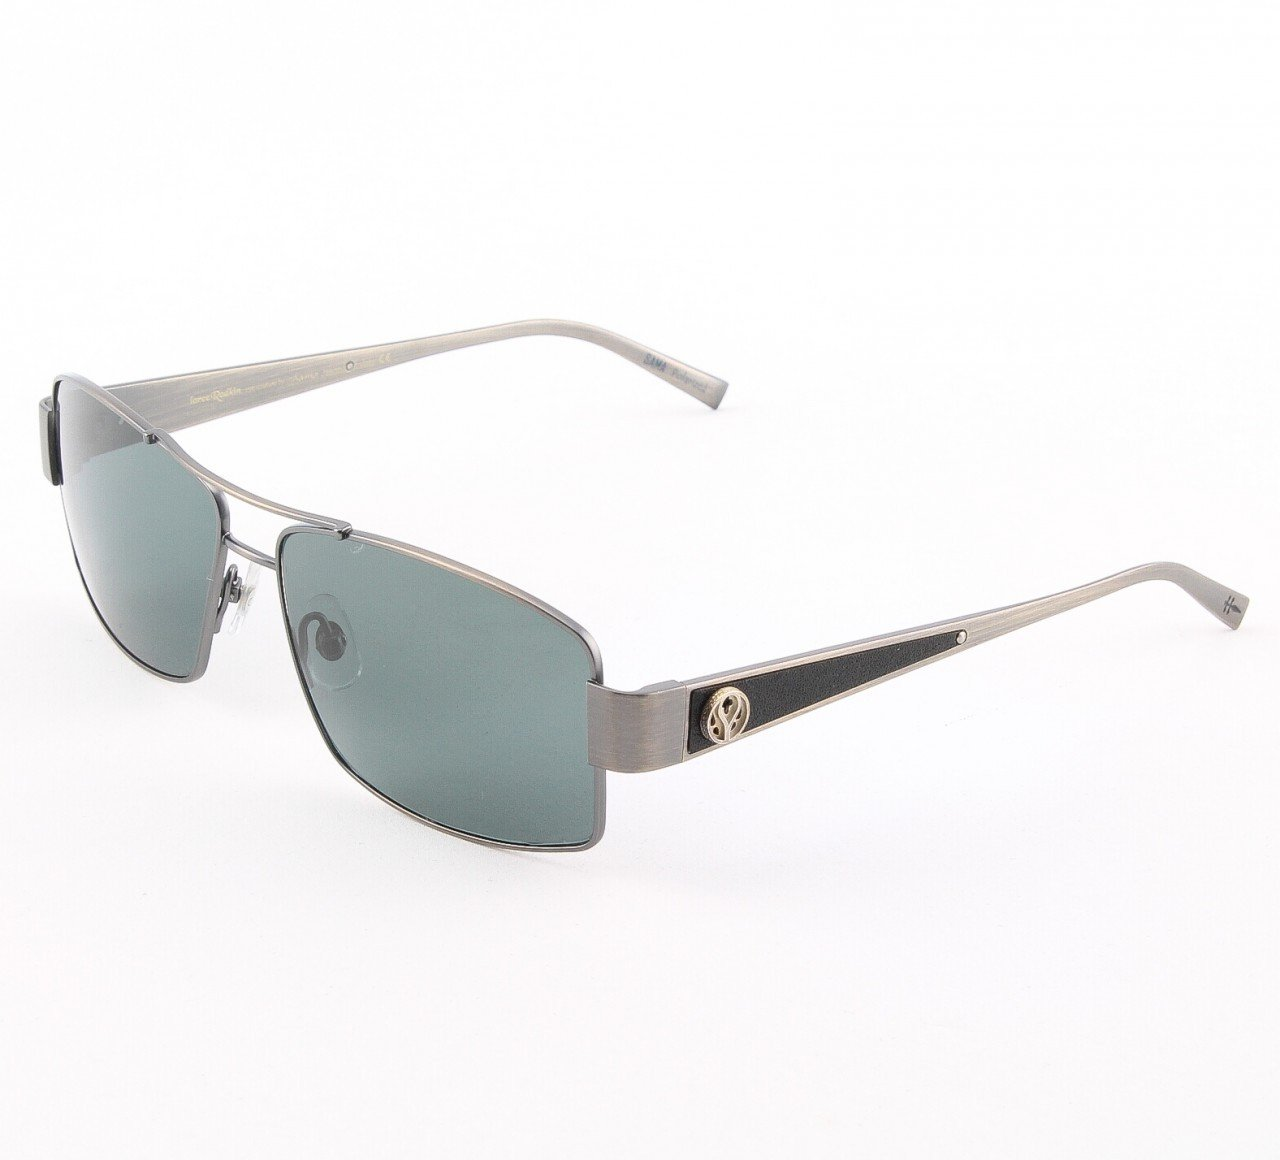 Loree Rodkin Jason Sunglasses by Sama Col. Slate with Gray Lenses, Leather and Sterling Silver